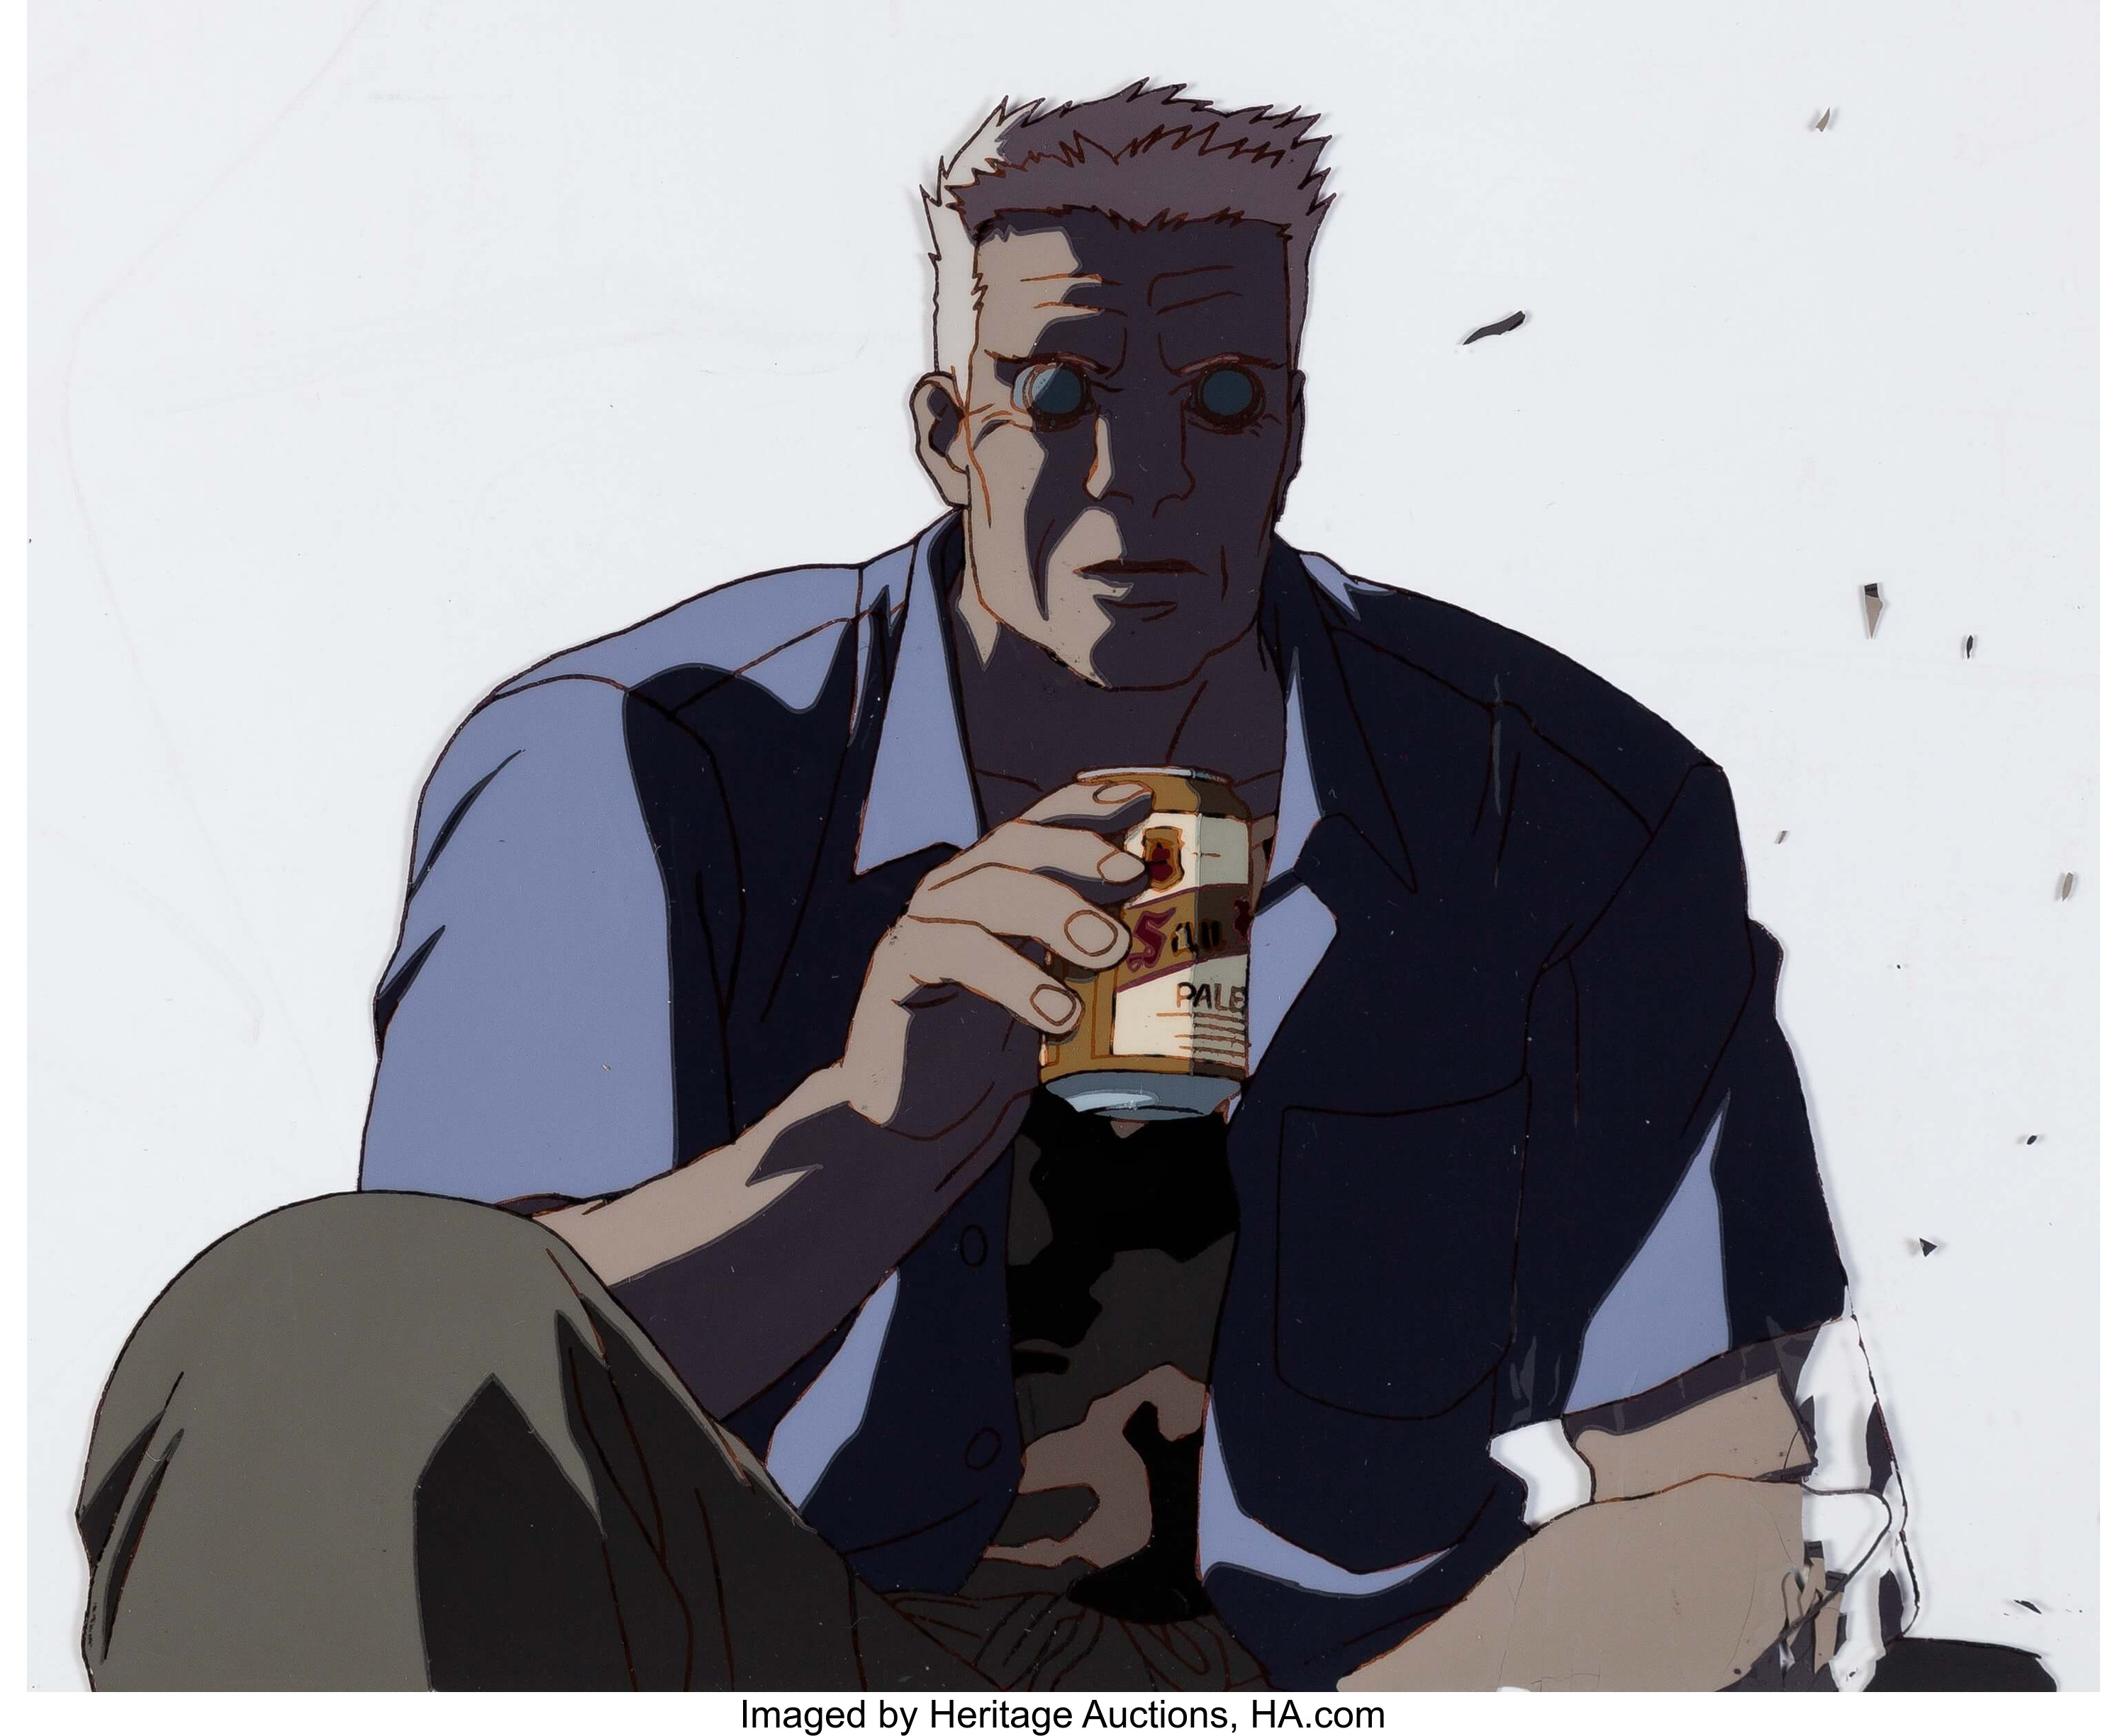 Ghost In The Shell Batou Anime Production Cel And Matching Lot 13111 Heritage Auctions